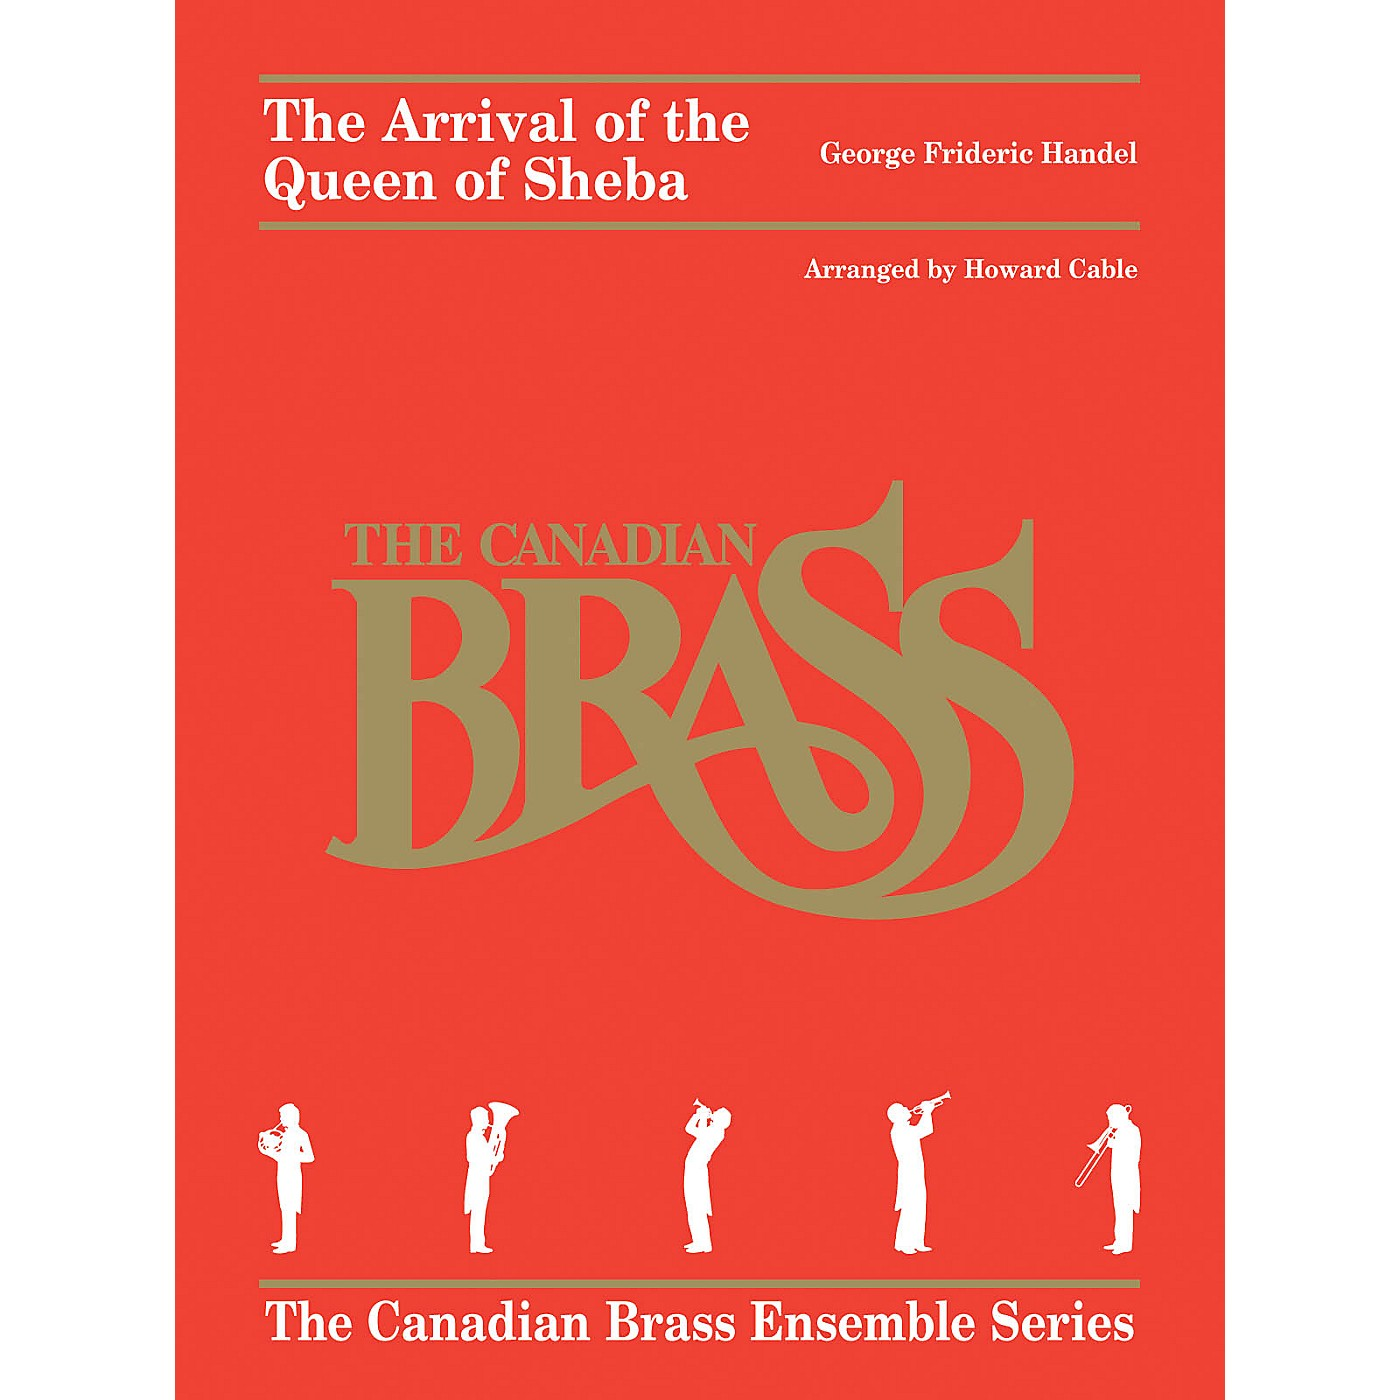 Hal Leonard George Frideric Handel - The Arrival of the Queen of Sheba Brass Ensemble Book Arranged by Howard Cable thumbnail